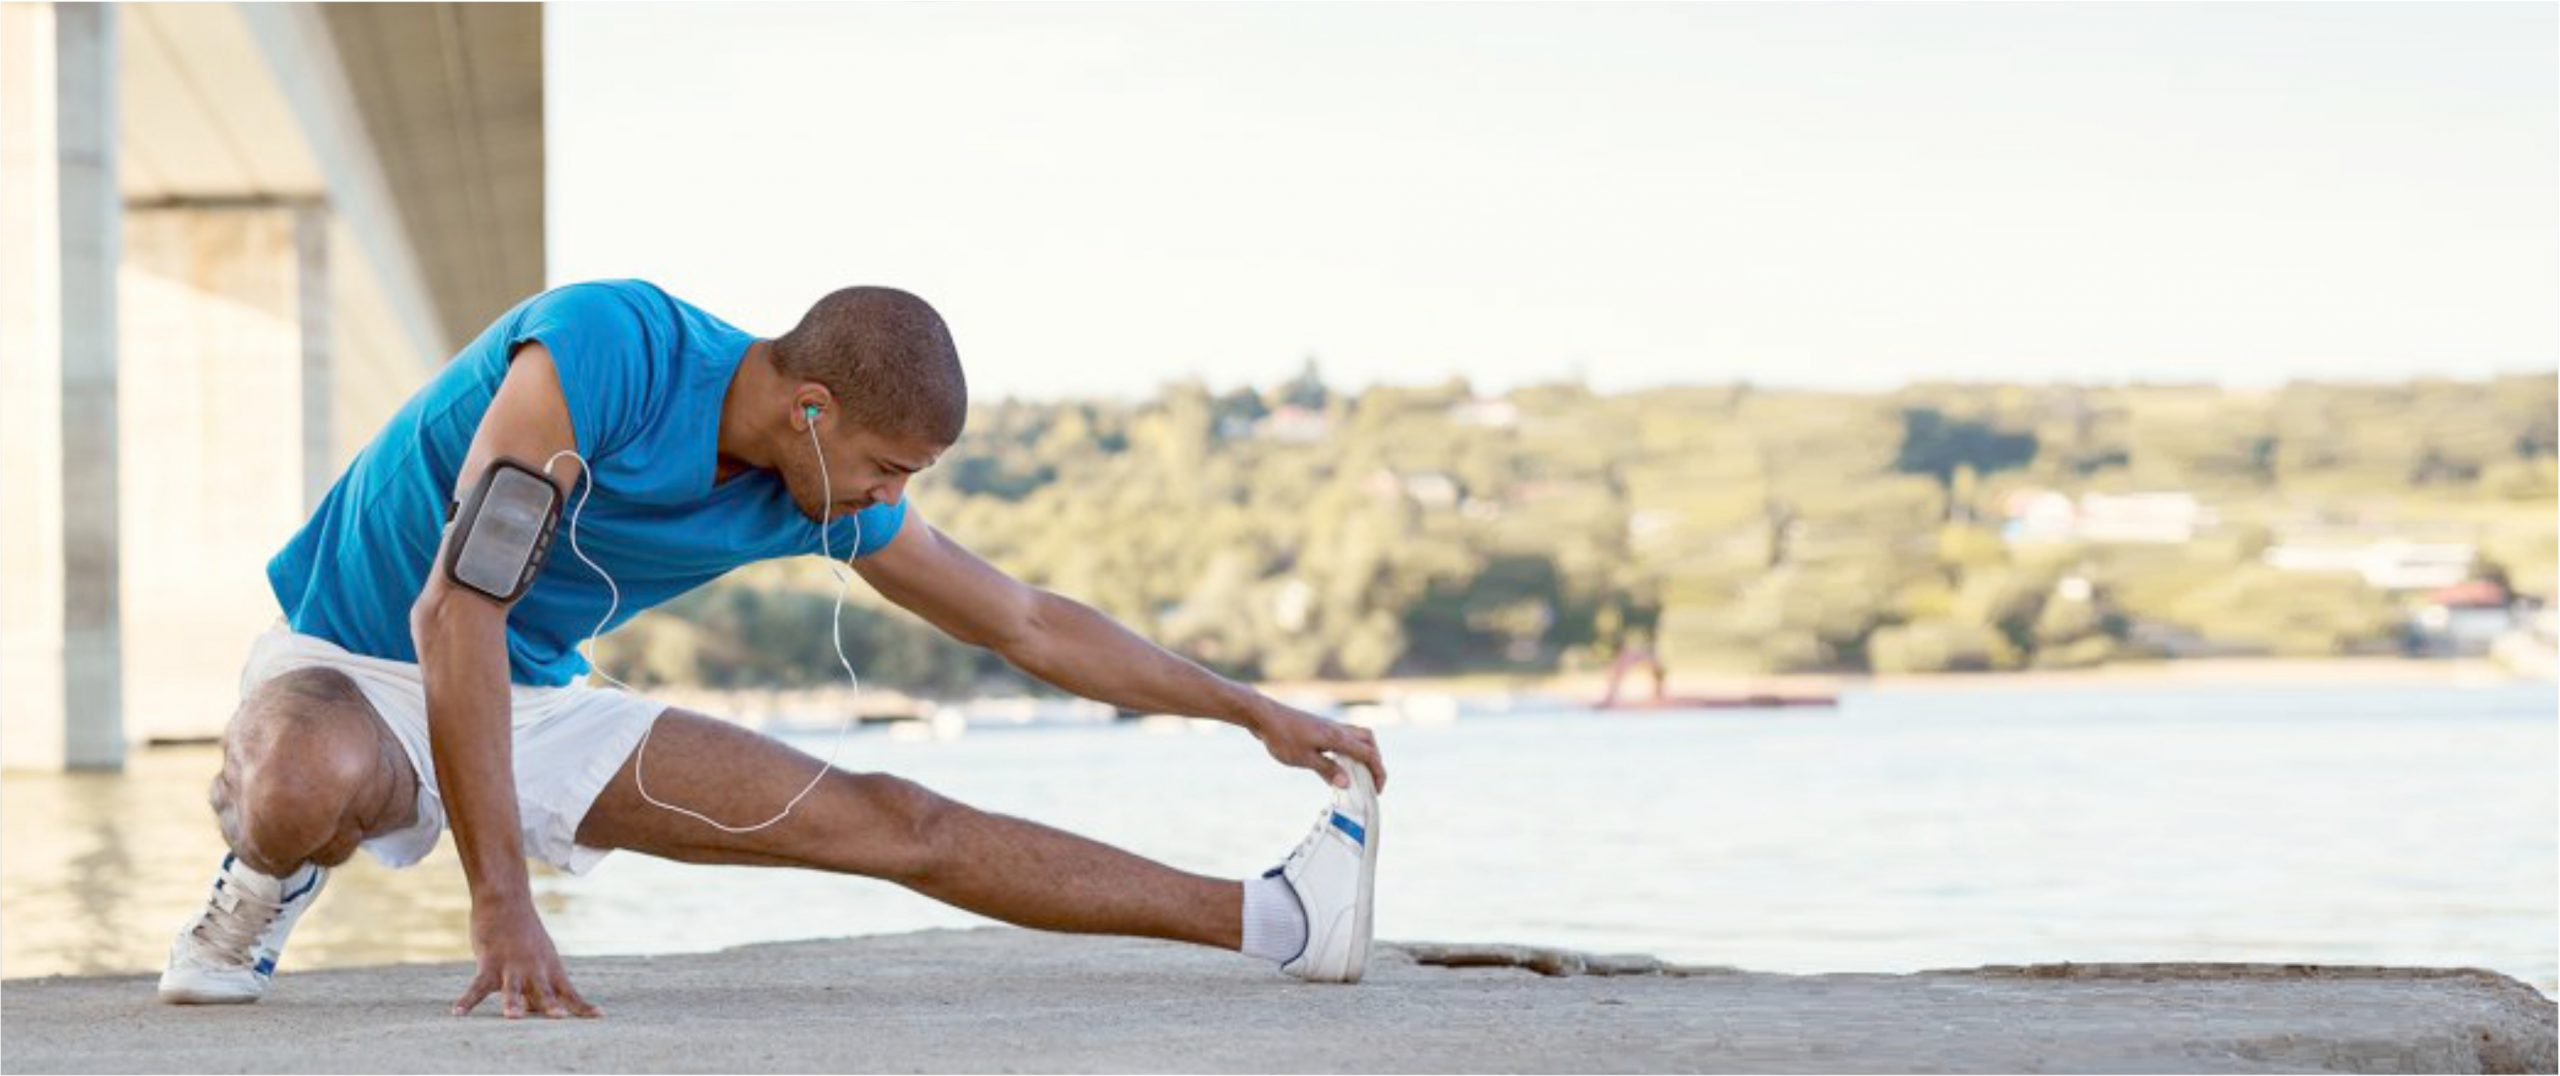 man, listening to his Iphone, performing a runners stretch in front of a lake